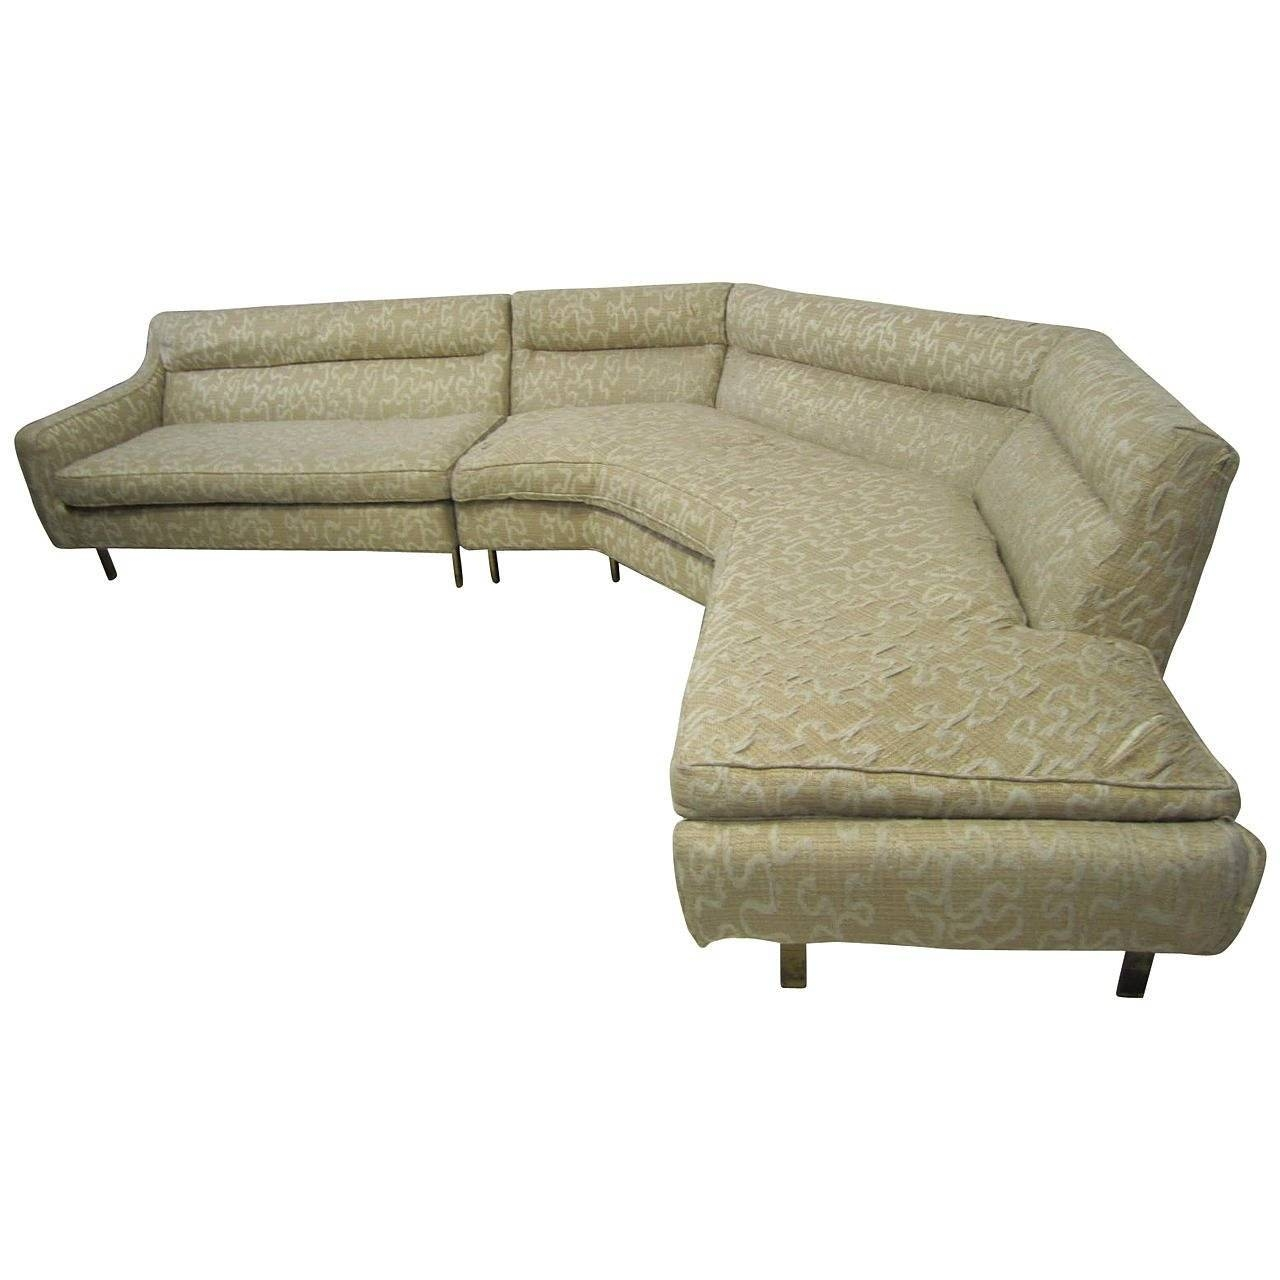 Simple 45 Degree Sectional Sofa 67 On Sectional Sofas Amazon With regarding 45 Degree Sectional Sofa (Image 26 of 30)